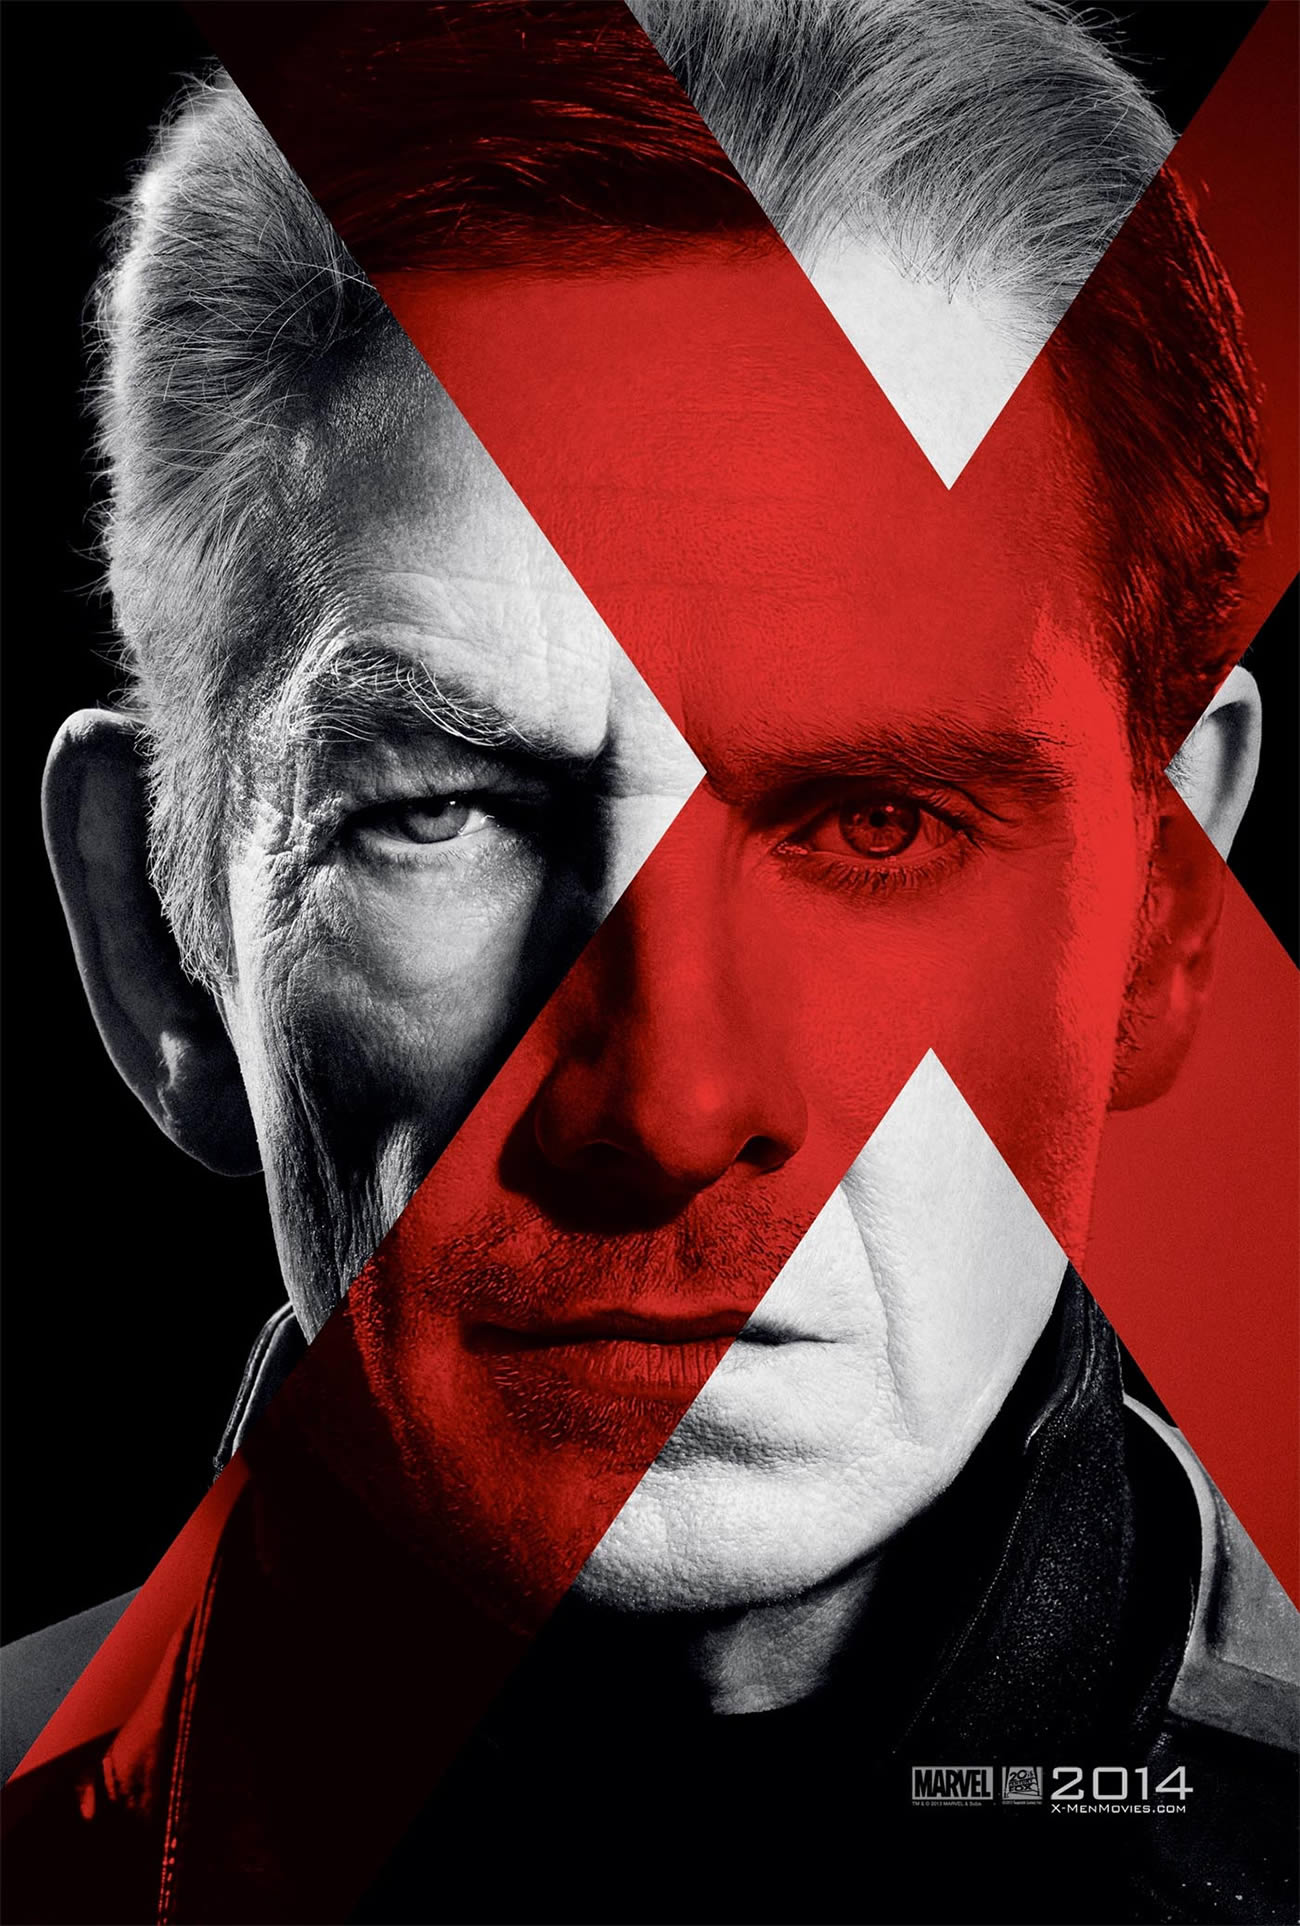 X-Men: Days of Future Past,red x on actor's face